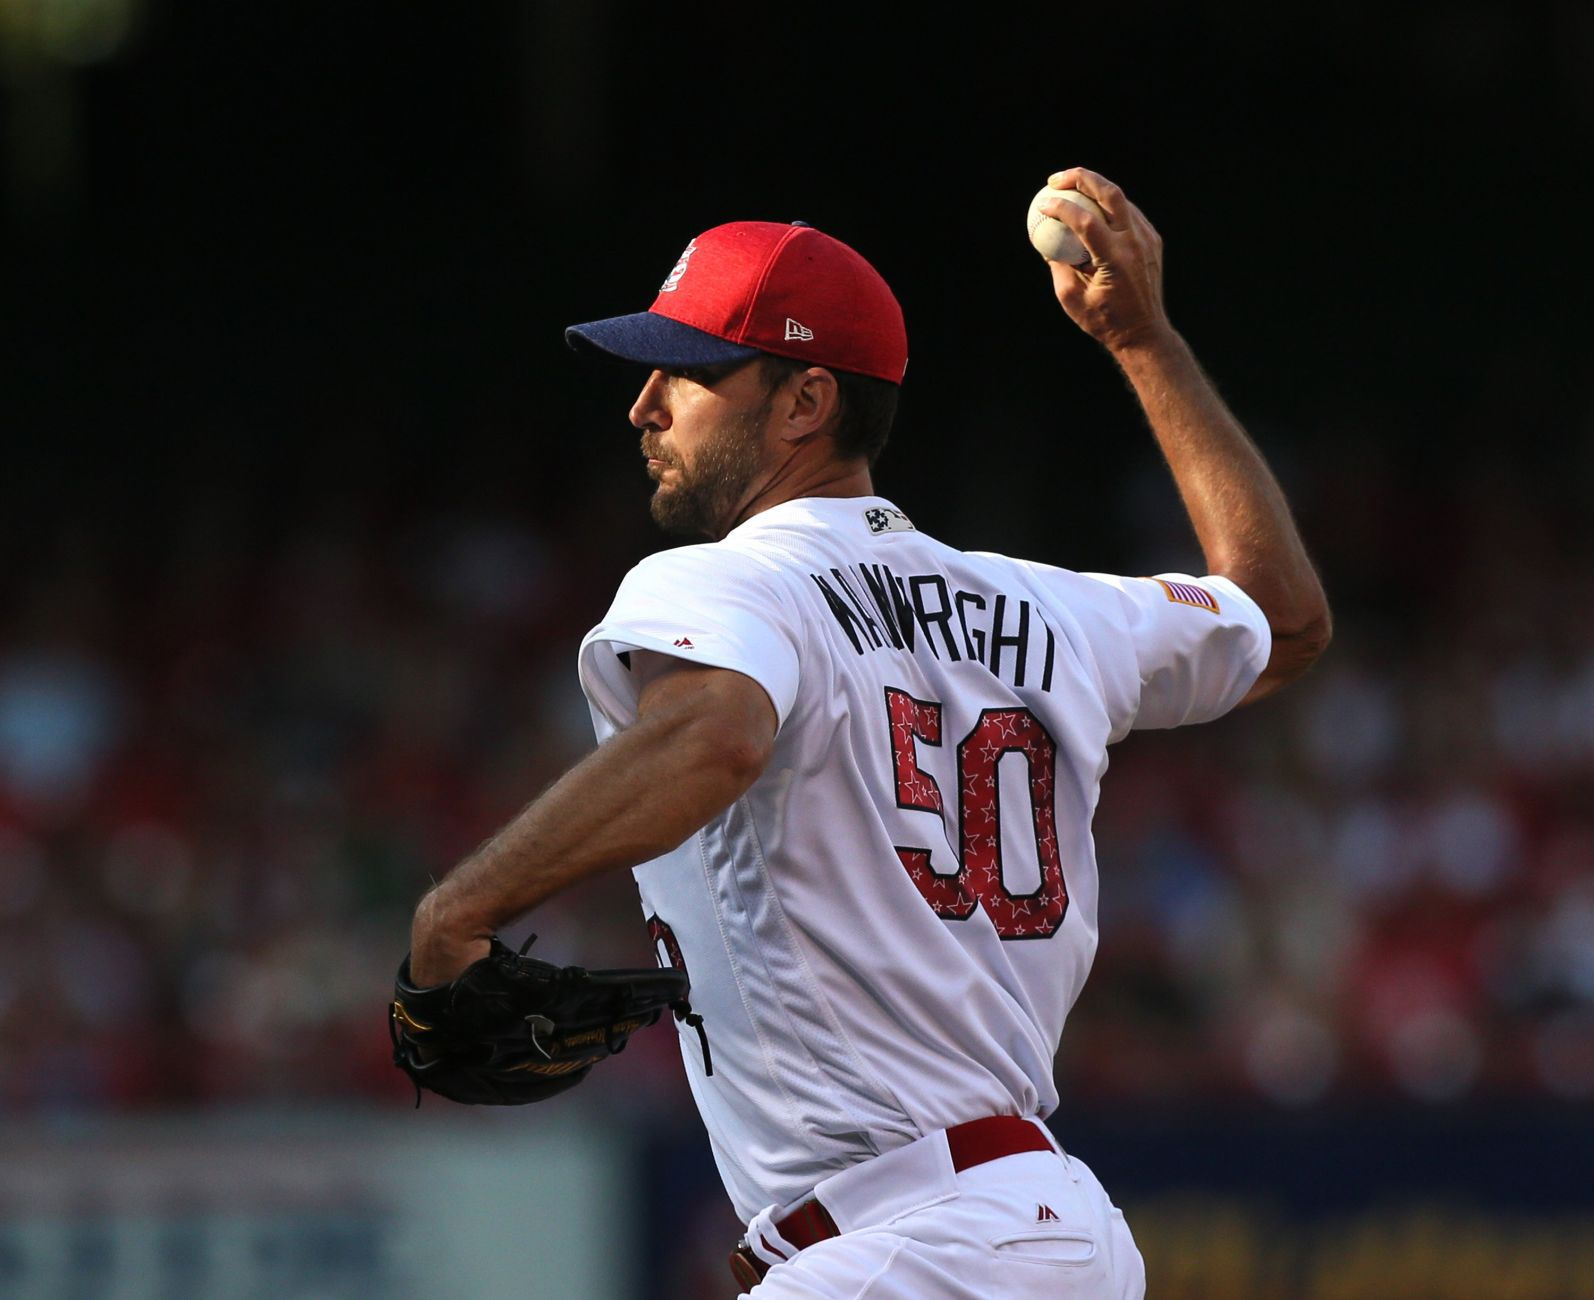 Cardinals activate Wainwright from DL for bullpen duty